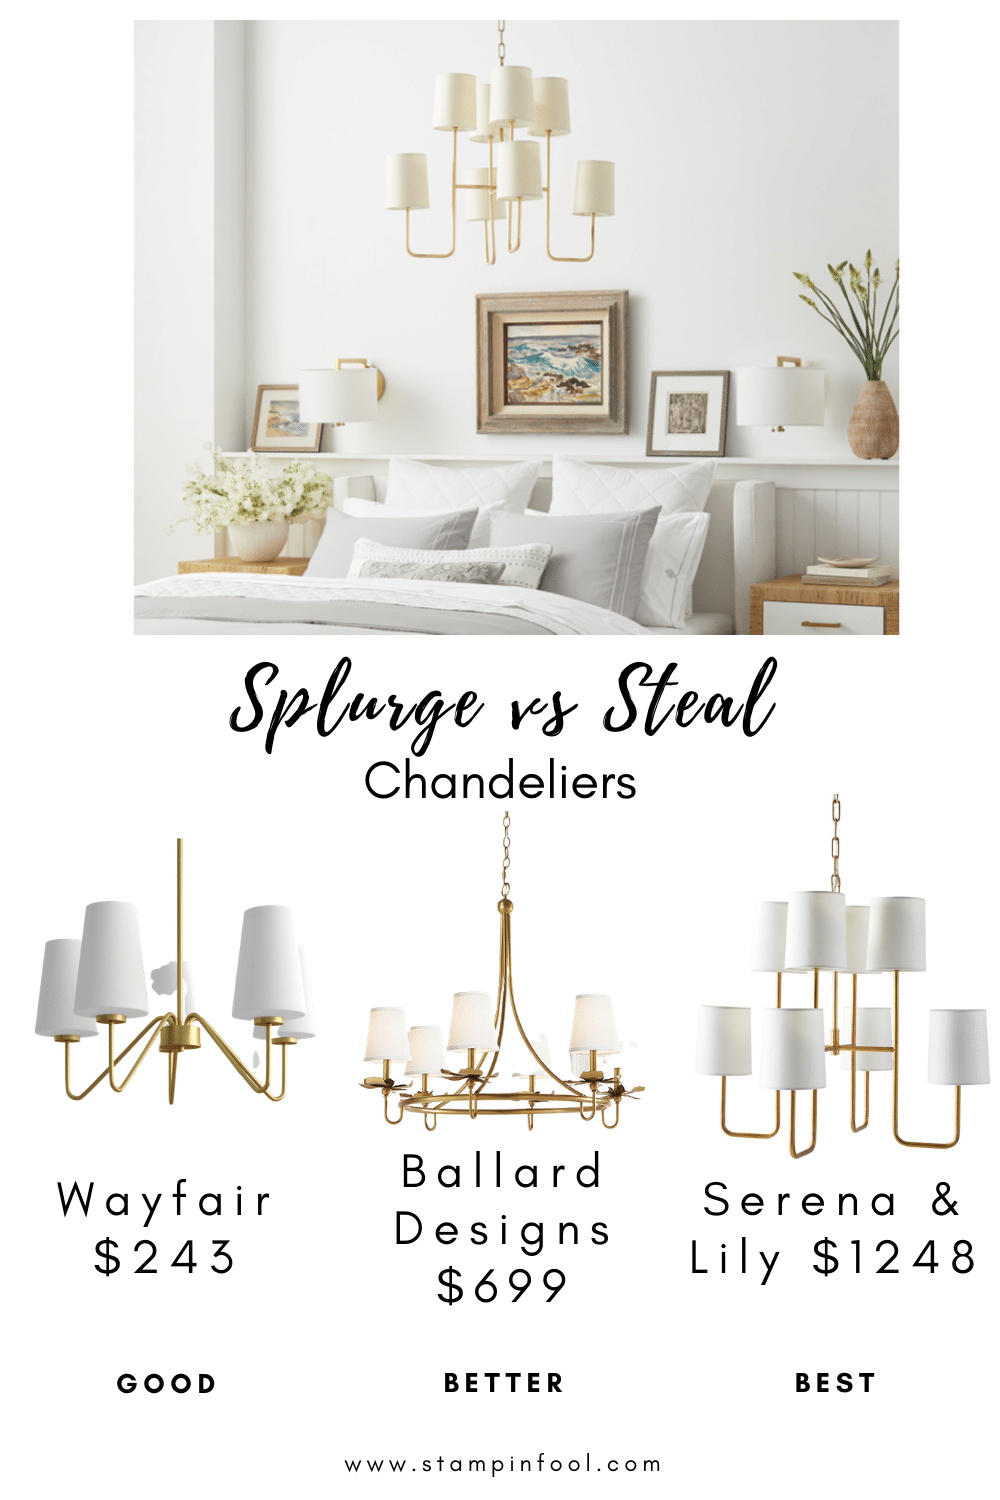 Splurge vs Steal Chandeliers - Interior Decorating Tips